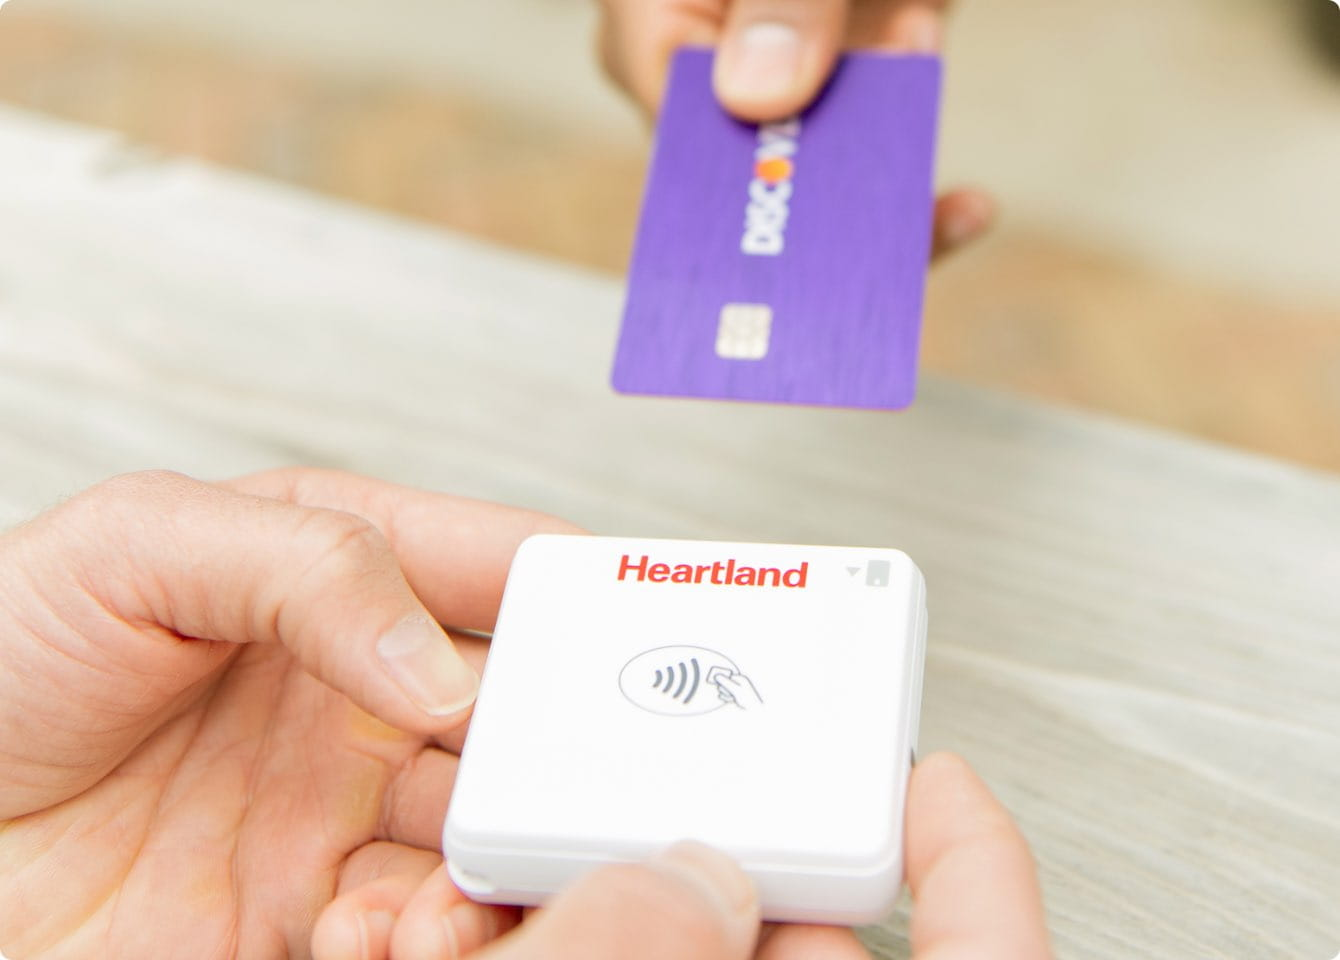 Credit card being inserted into mobile payment processing hardware